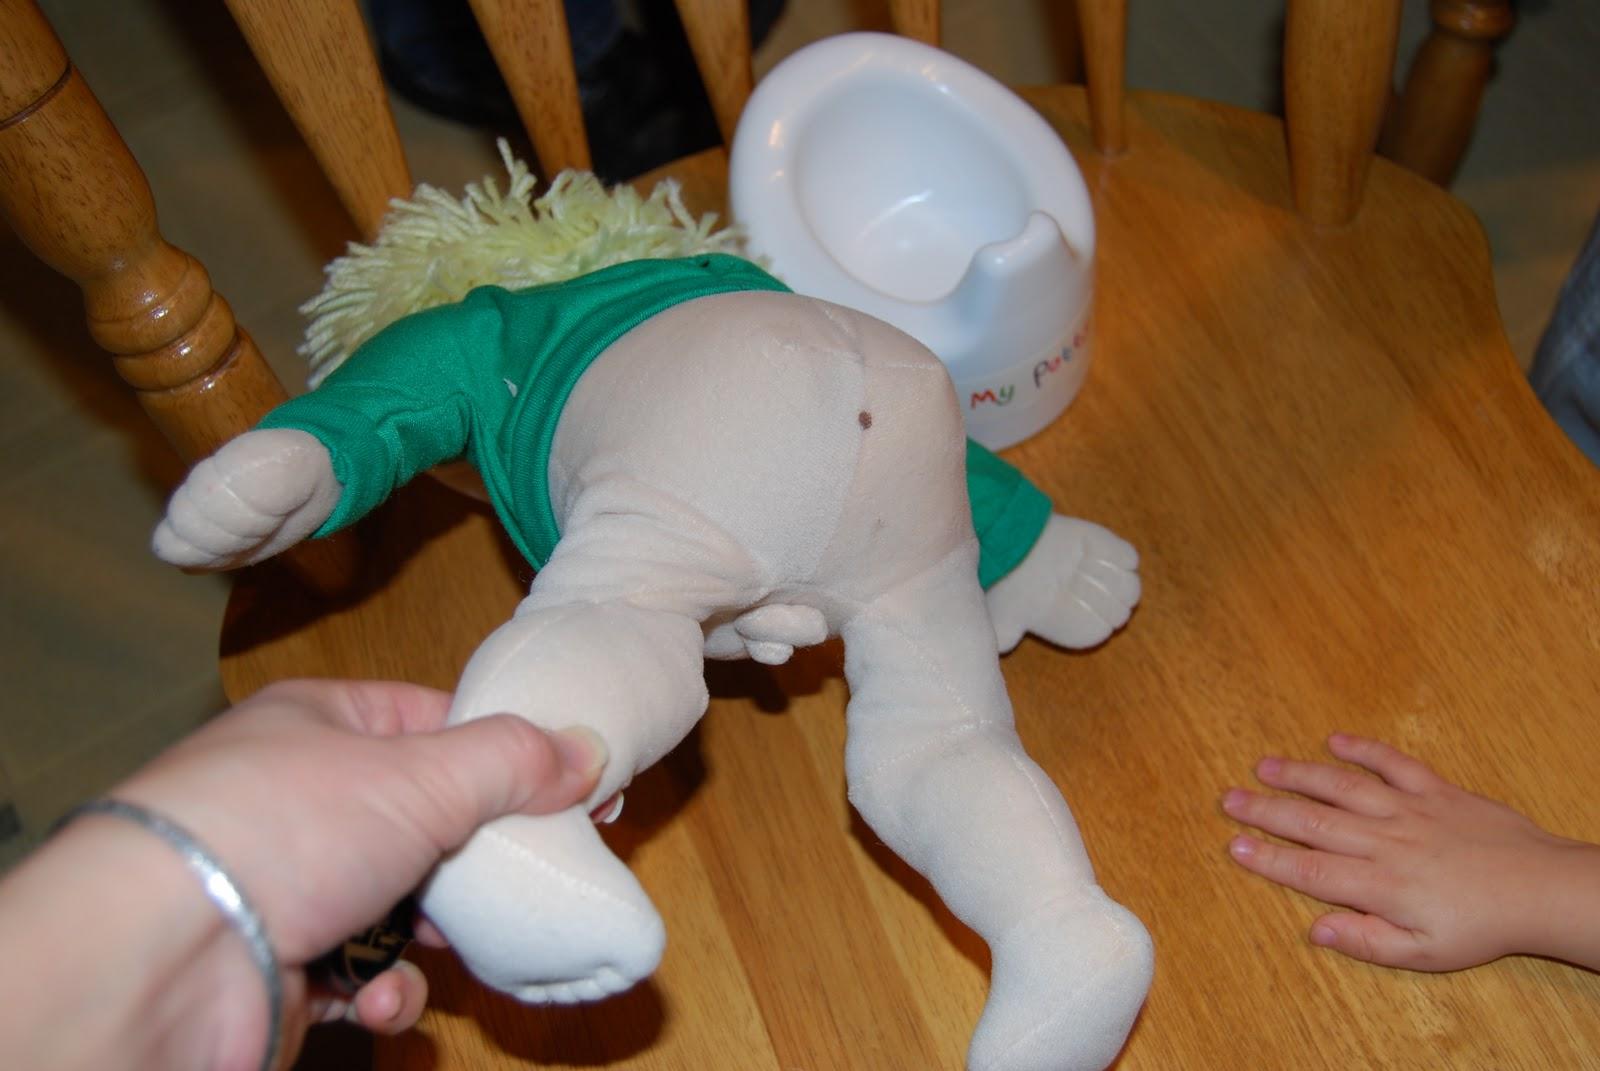 Life With My Littles Baby Bottoms Diversity Doll Review And 2500 Gc Giveaway To Wee Willie Winks 7 Nov-9436